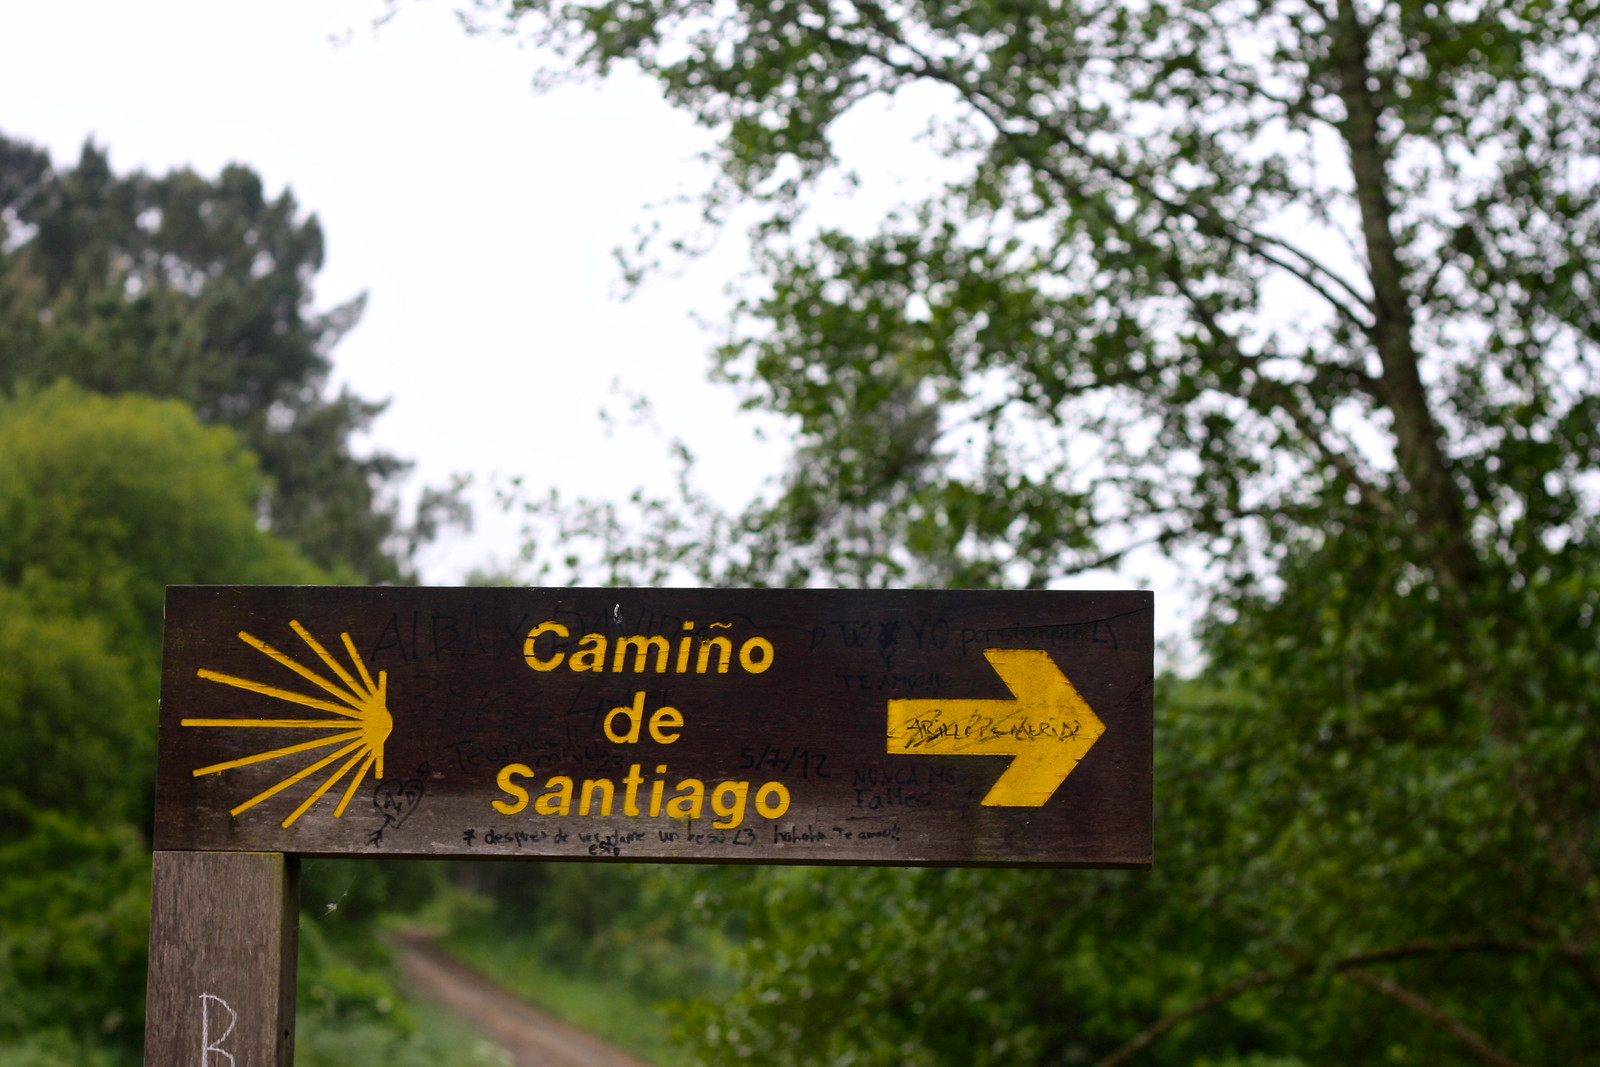 Wooden sign for the Camino de Santiago in Galicia, Spain